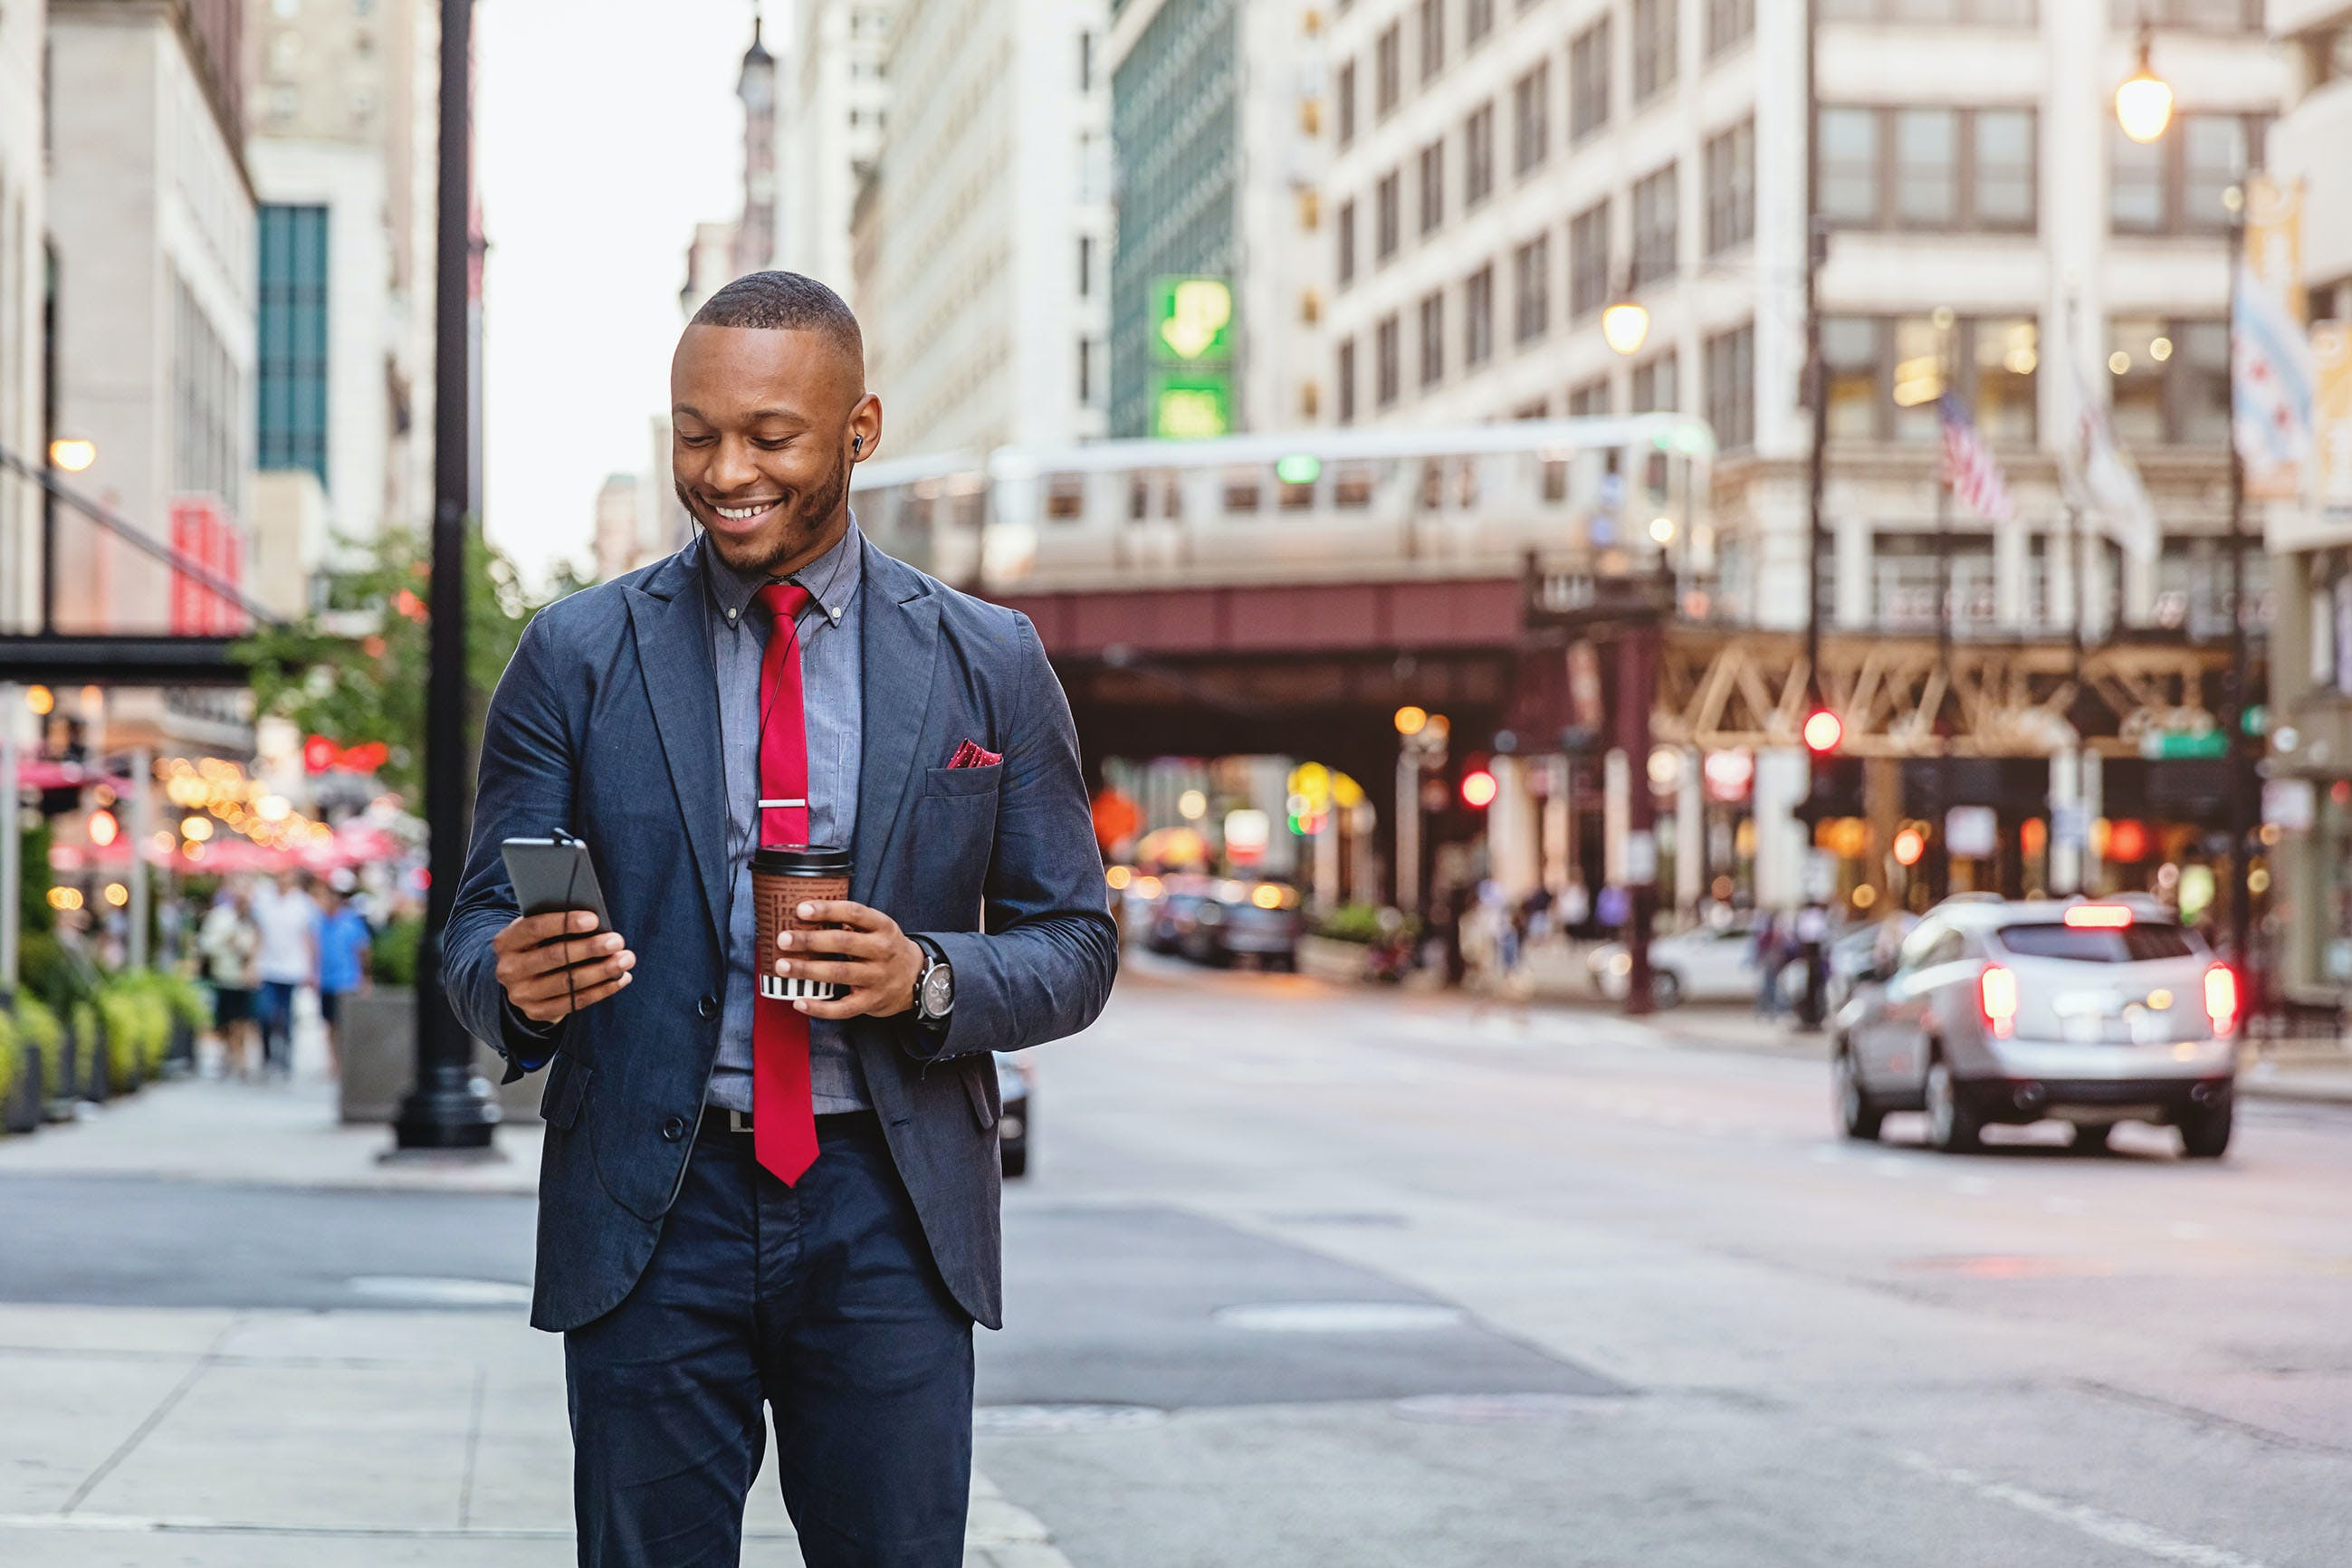 Smiling business commuter using smart phone chicago streets